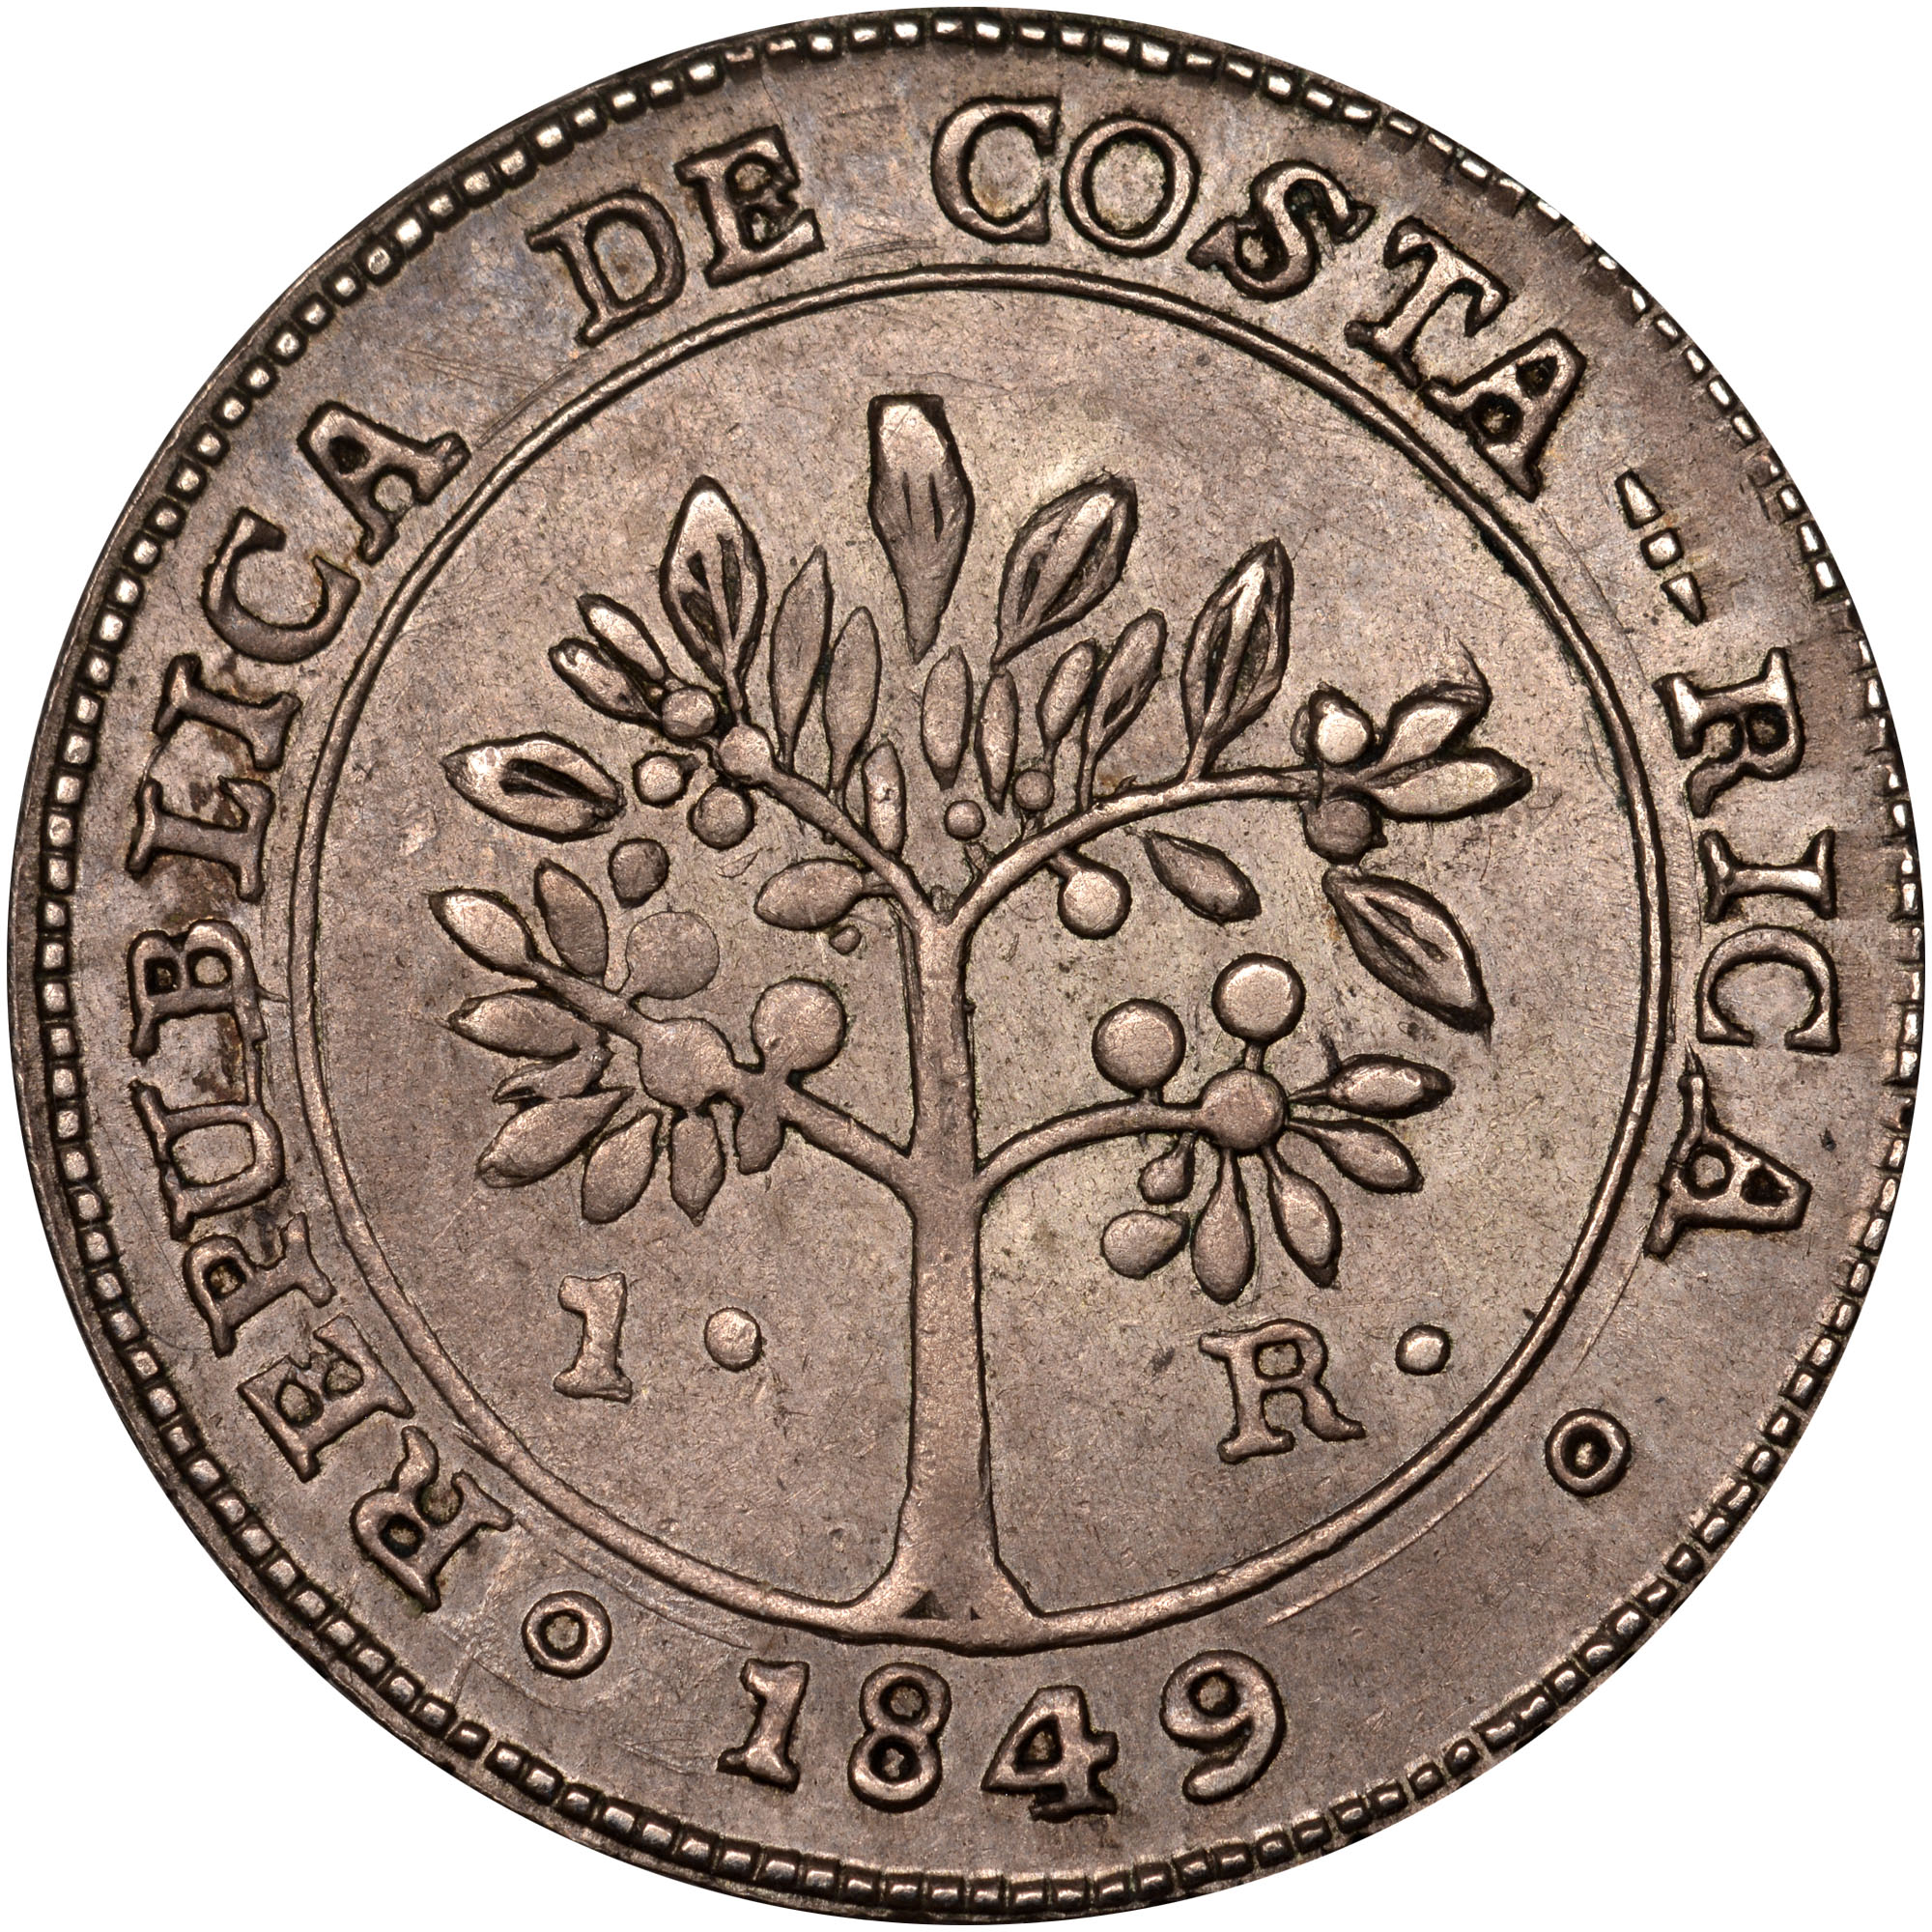 1849-1850 Costa Rica Real obverse